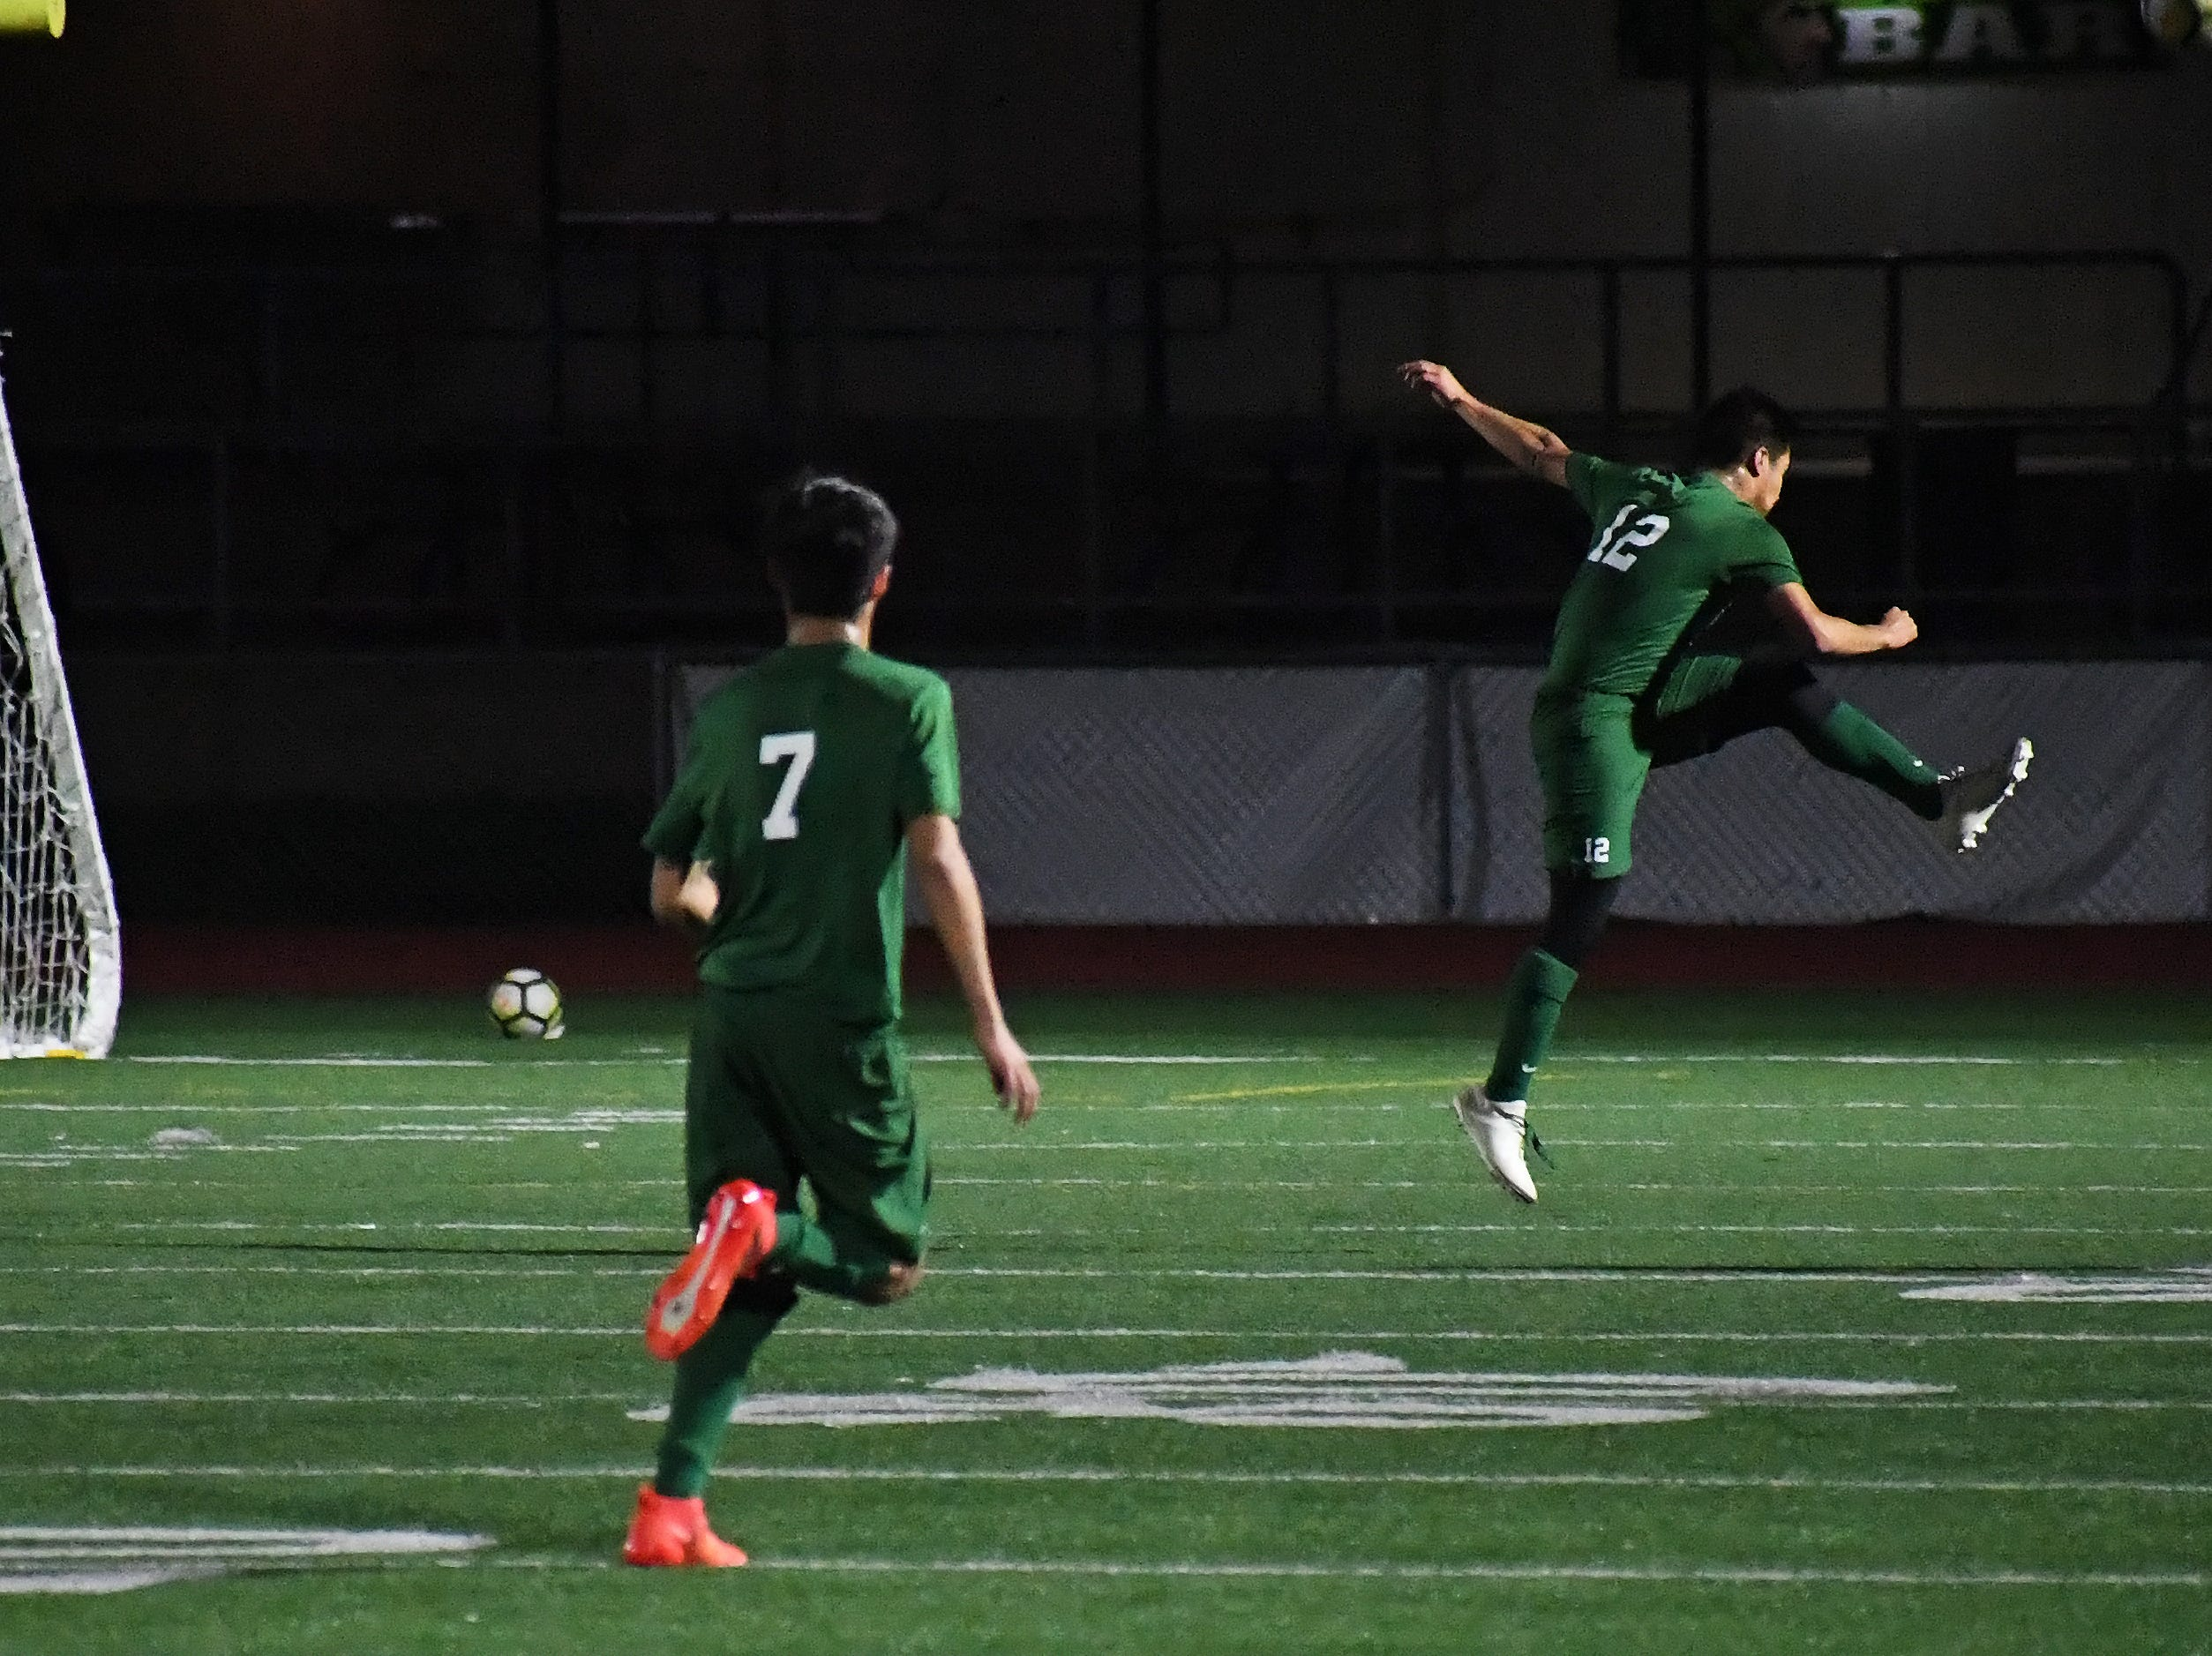 Alisal midfielder Jesus Gregorio (12) clears the ball away from the Alisal goal.